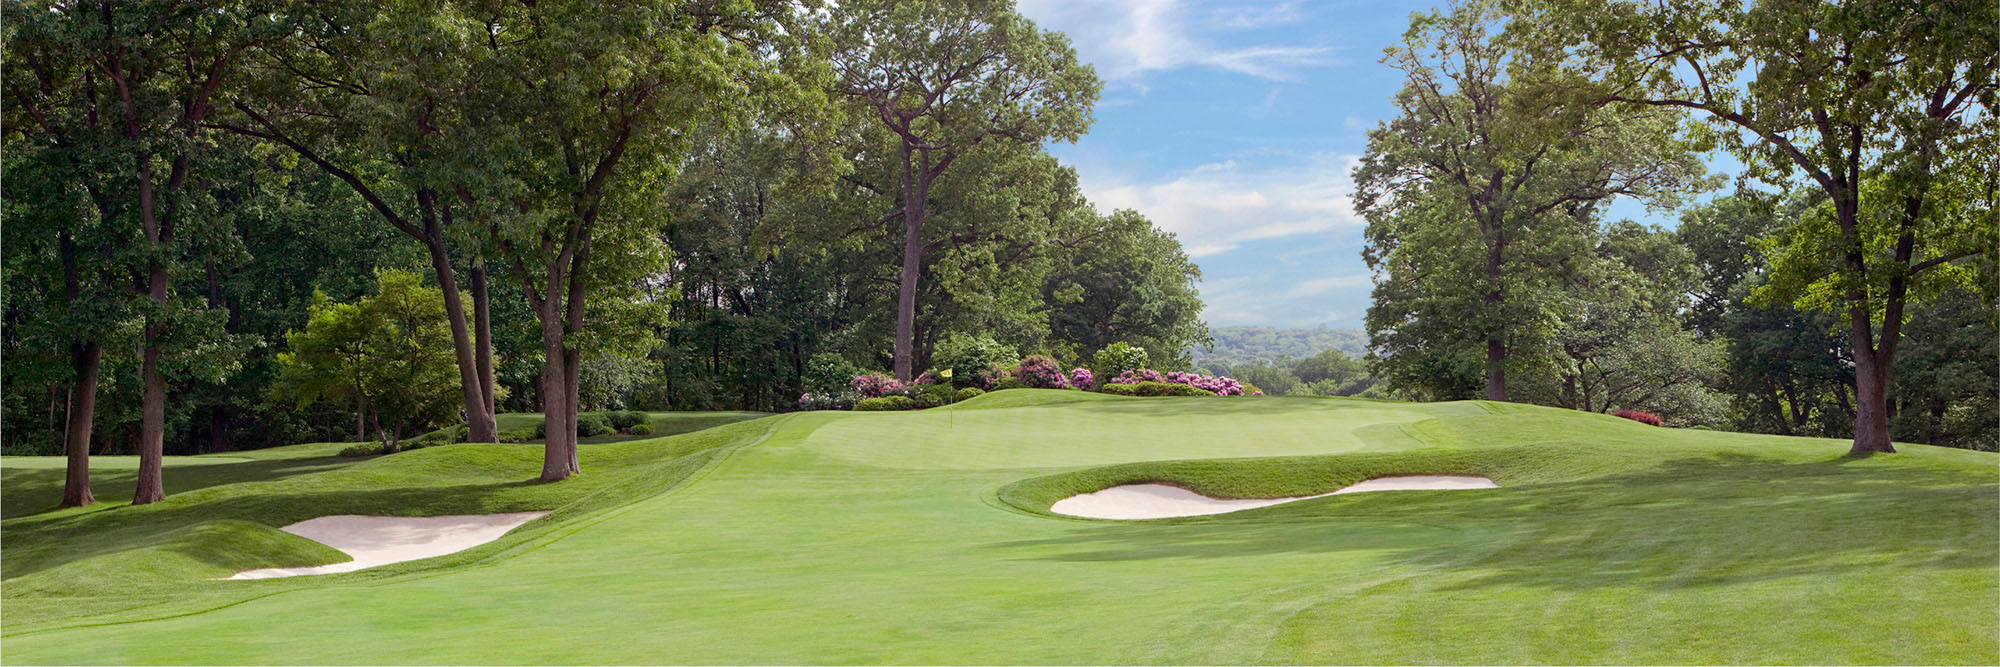 Golf Course Image - Alpine Country Club No. 16